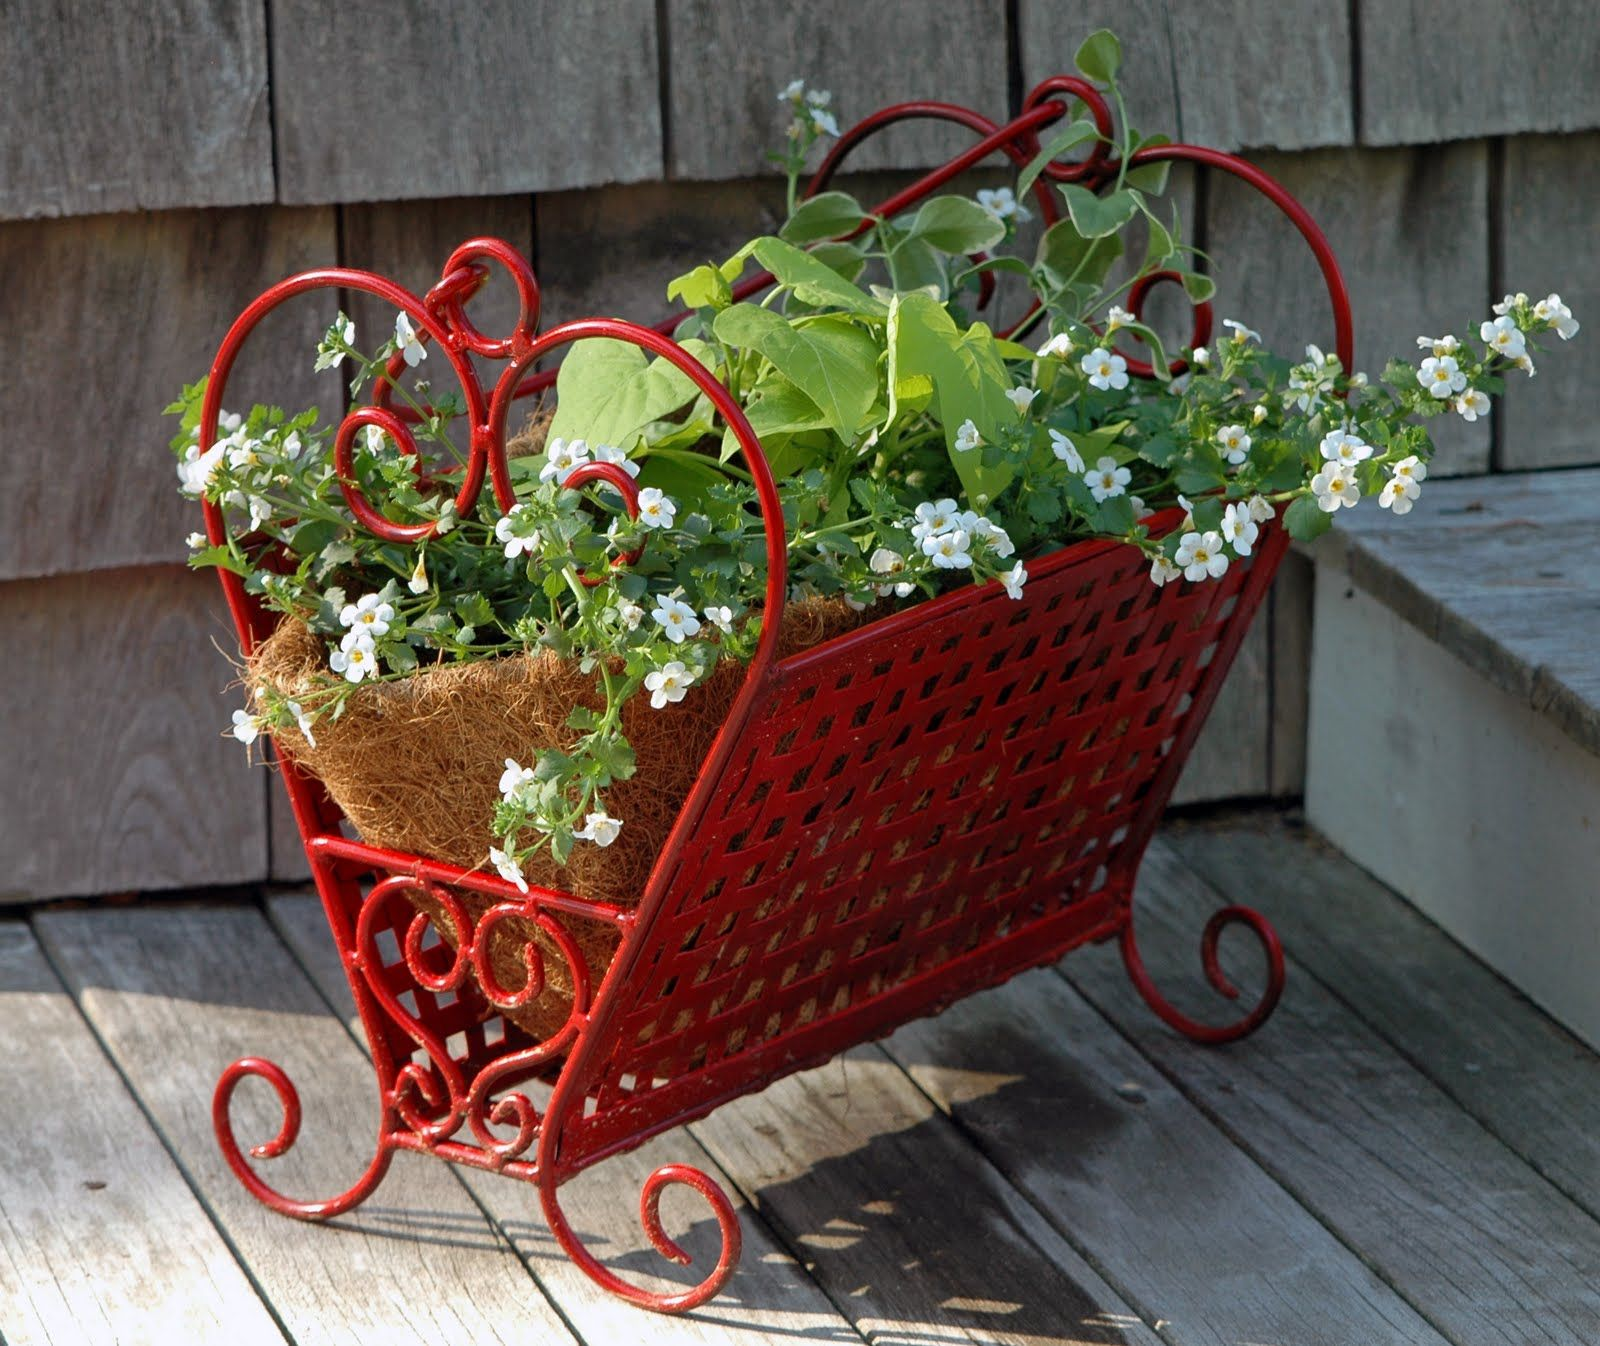 Magazine Rack Turned Planter Garden Structure